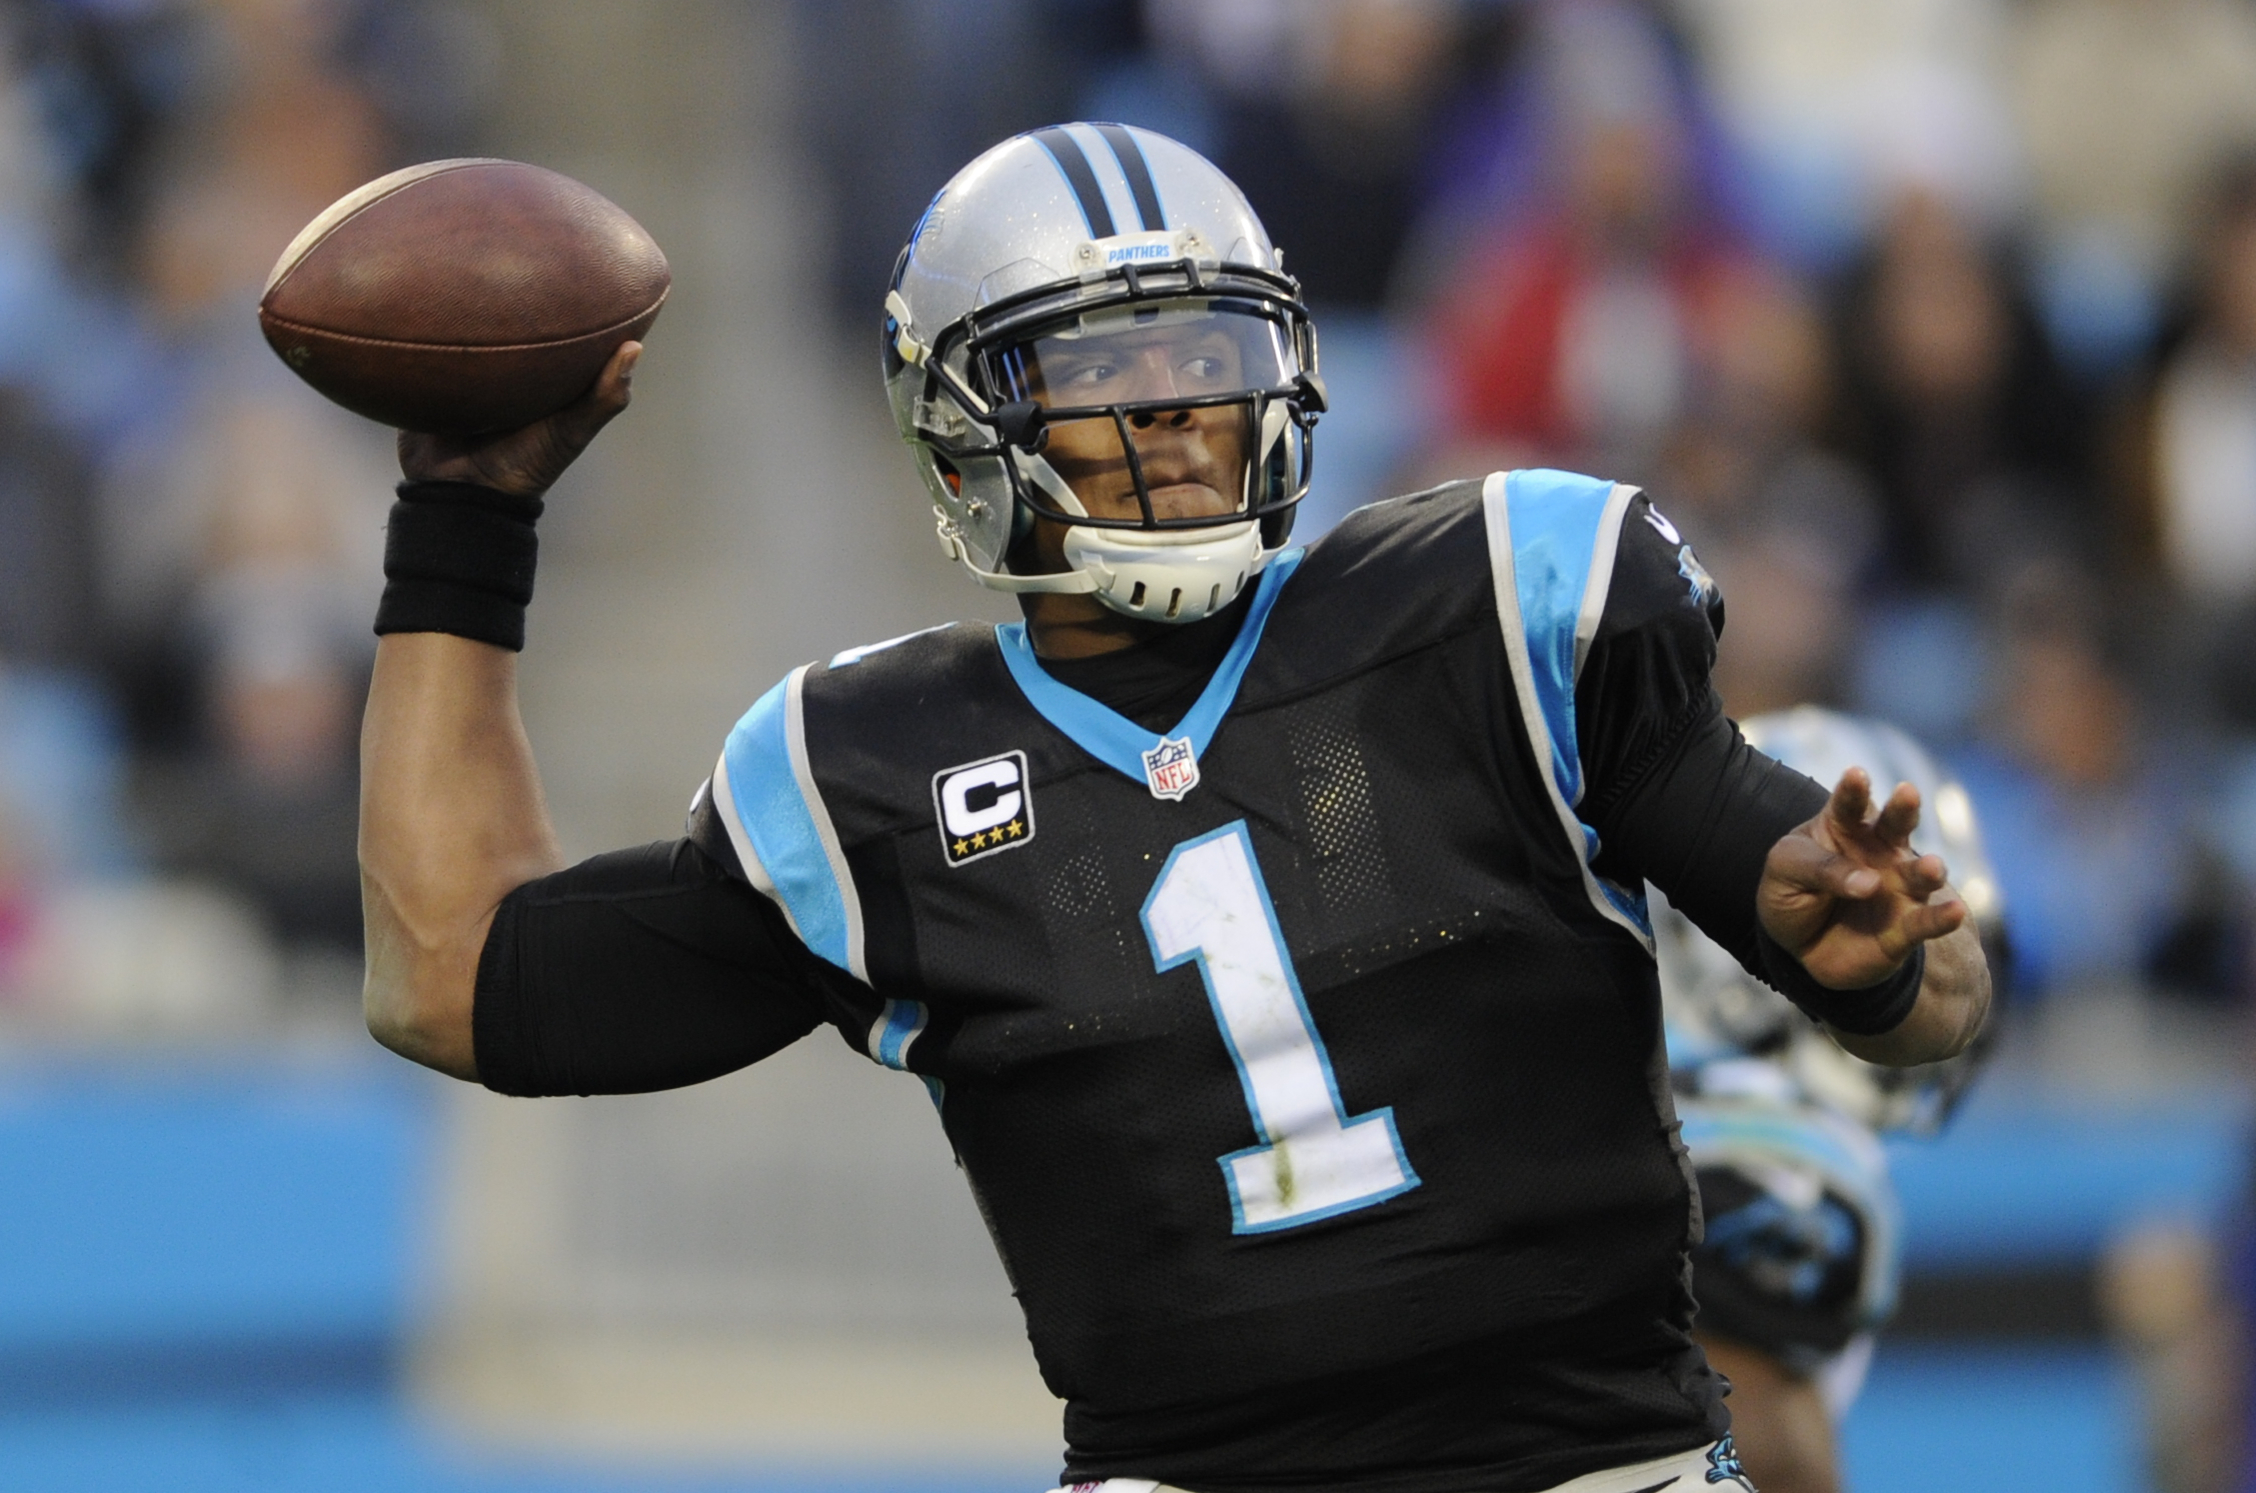 FILE - In a Sunday Dec. 11, 2016 file photo, Carolina Panthers' Cam Newton (1) looks to pass against the San Diego Chargers in the second half of an NFL football game in Charlotte, N.C. Over a year has passed since the Carolina Panthers crushed the Washin